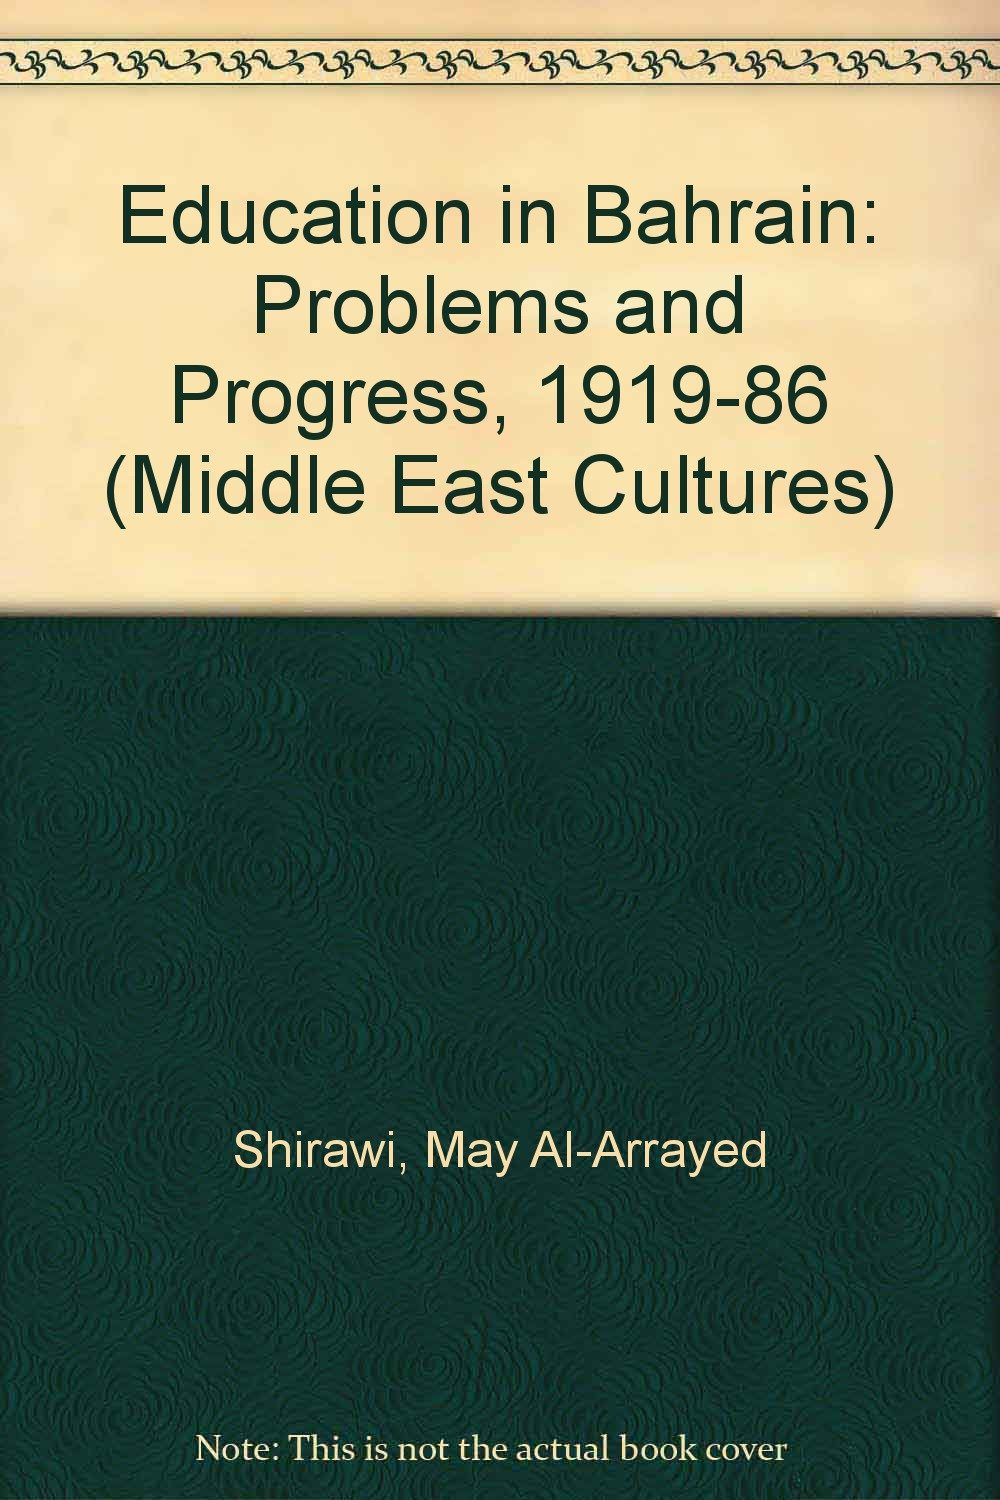 Education in Bahrain: Problems and Progress, 1919-86 (Middle East Cultures S.)